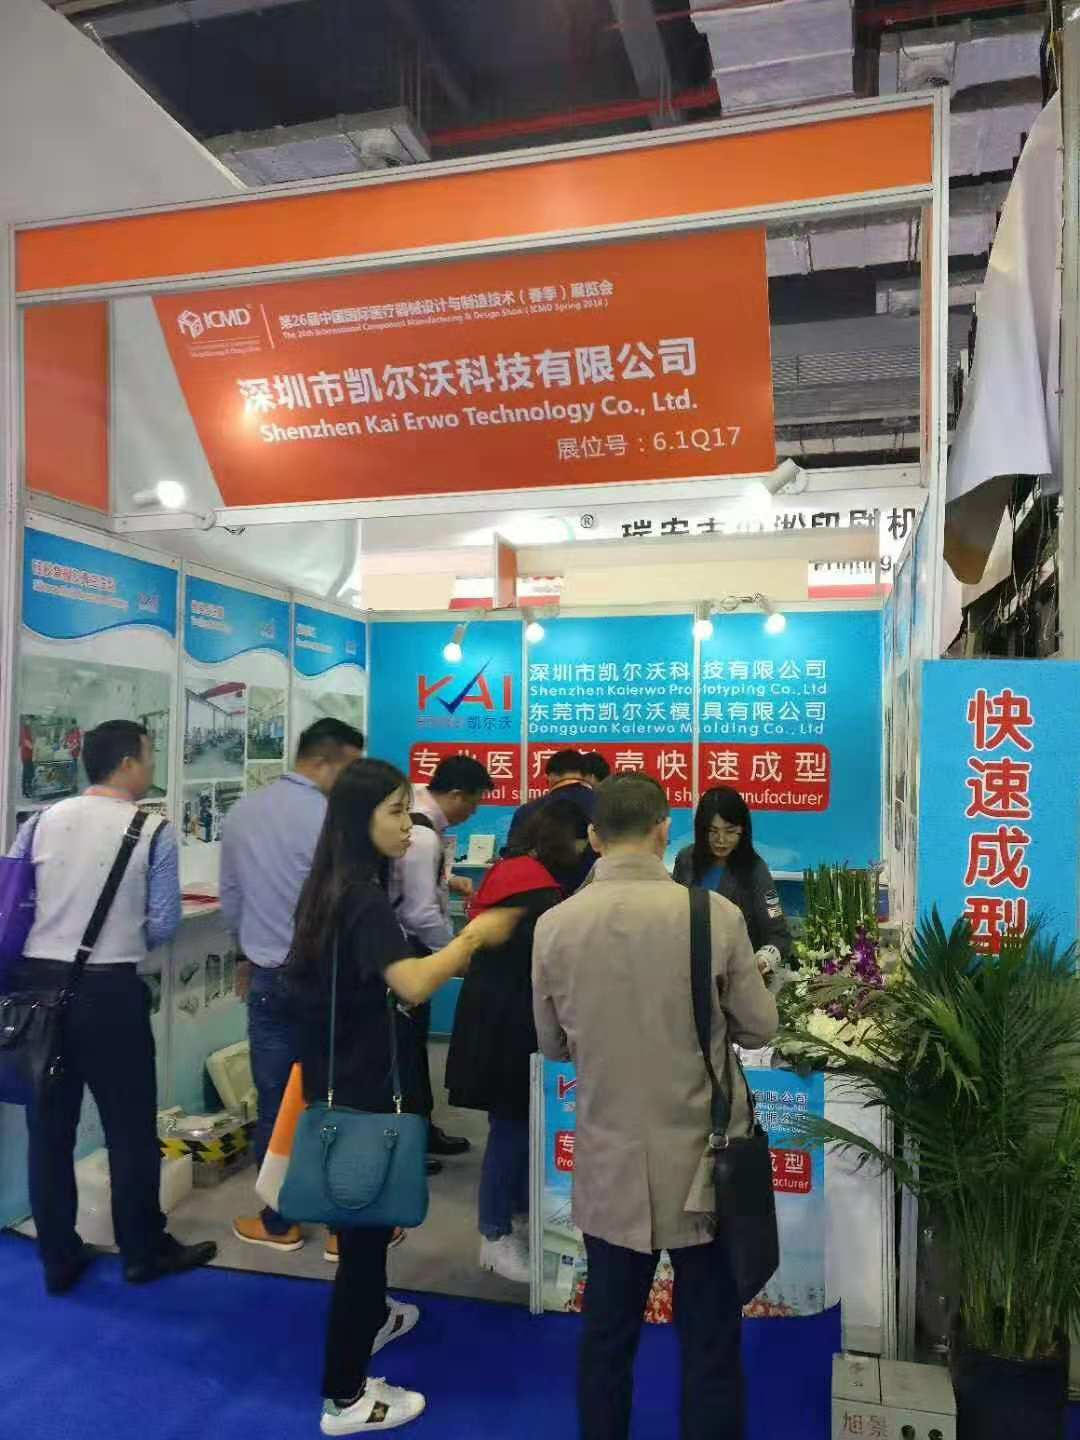 2019.5.14-17 National Exhibition and Convention (Shanghai)